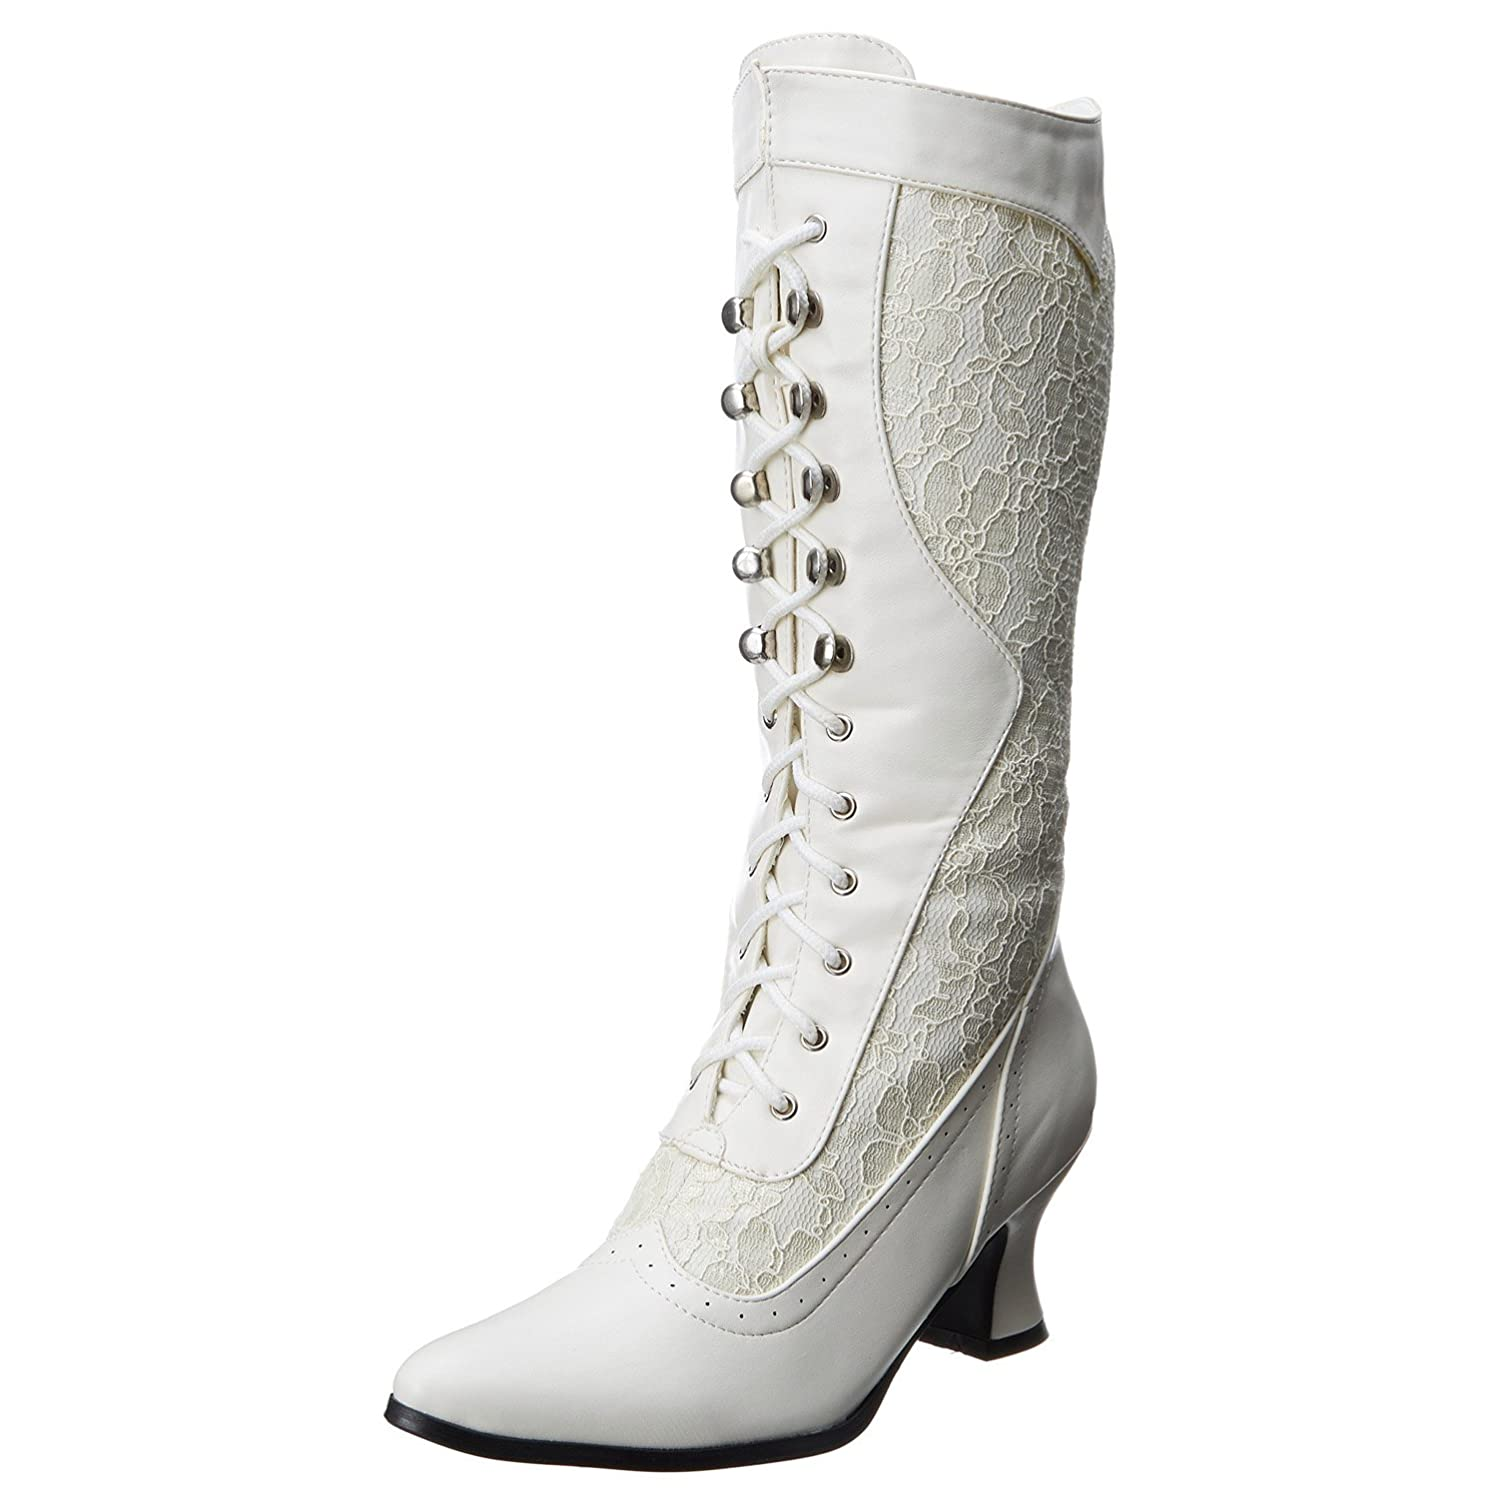 Womens Vistorian Boots Ivory White Mid Calf Boots Lace Shoes 2 1/2 Inch Heels B002H9Y2HY 10